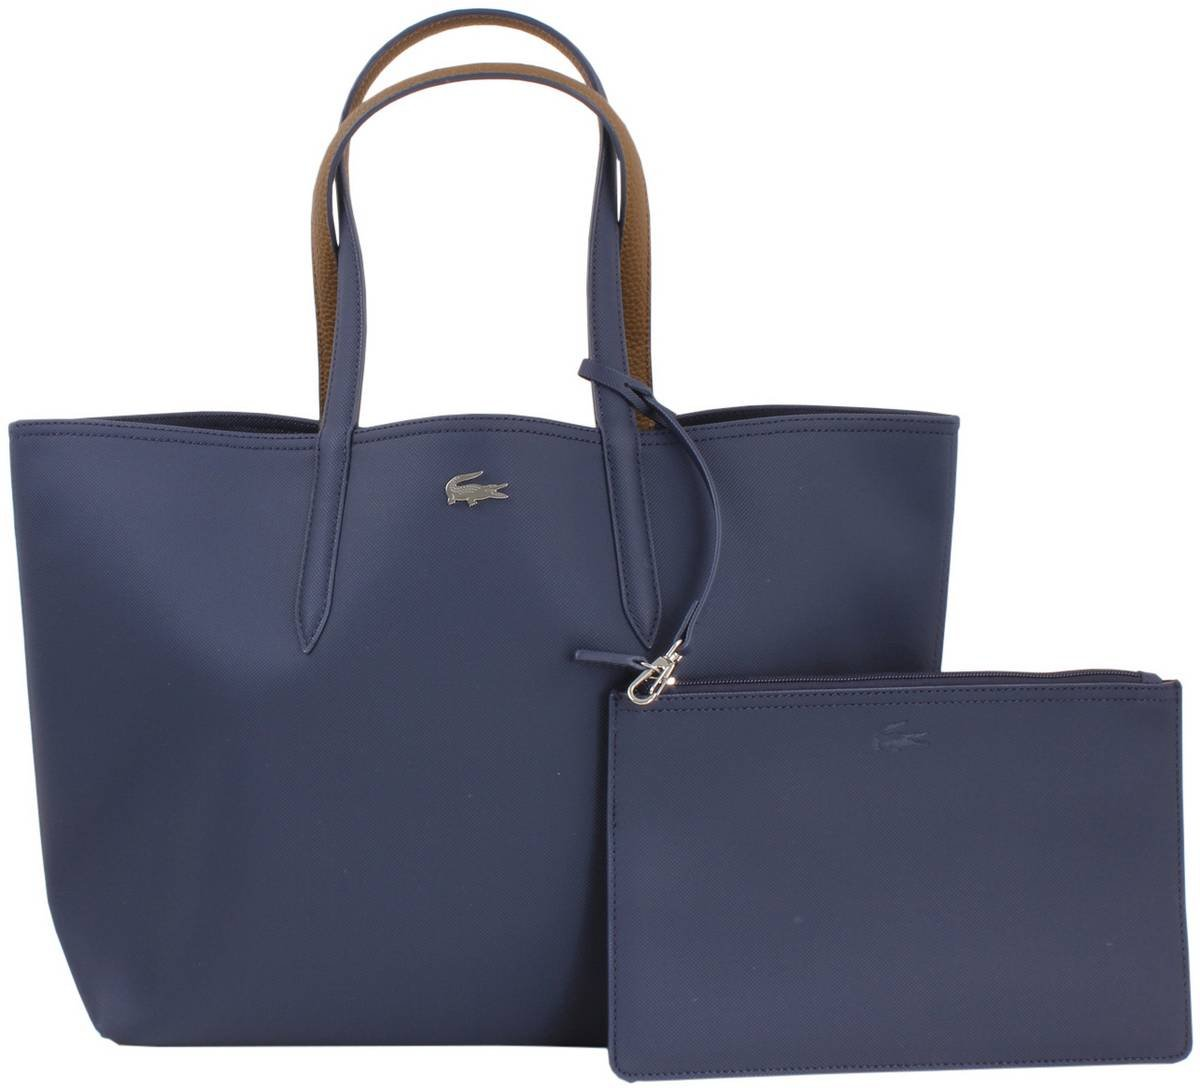 Peacoat Navy/Brown Reversible Shopping Bag by Lacoste